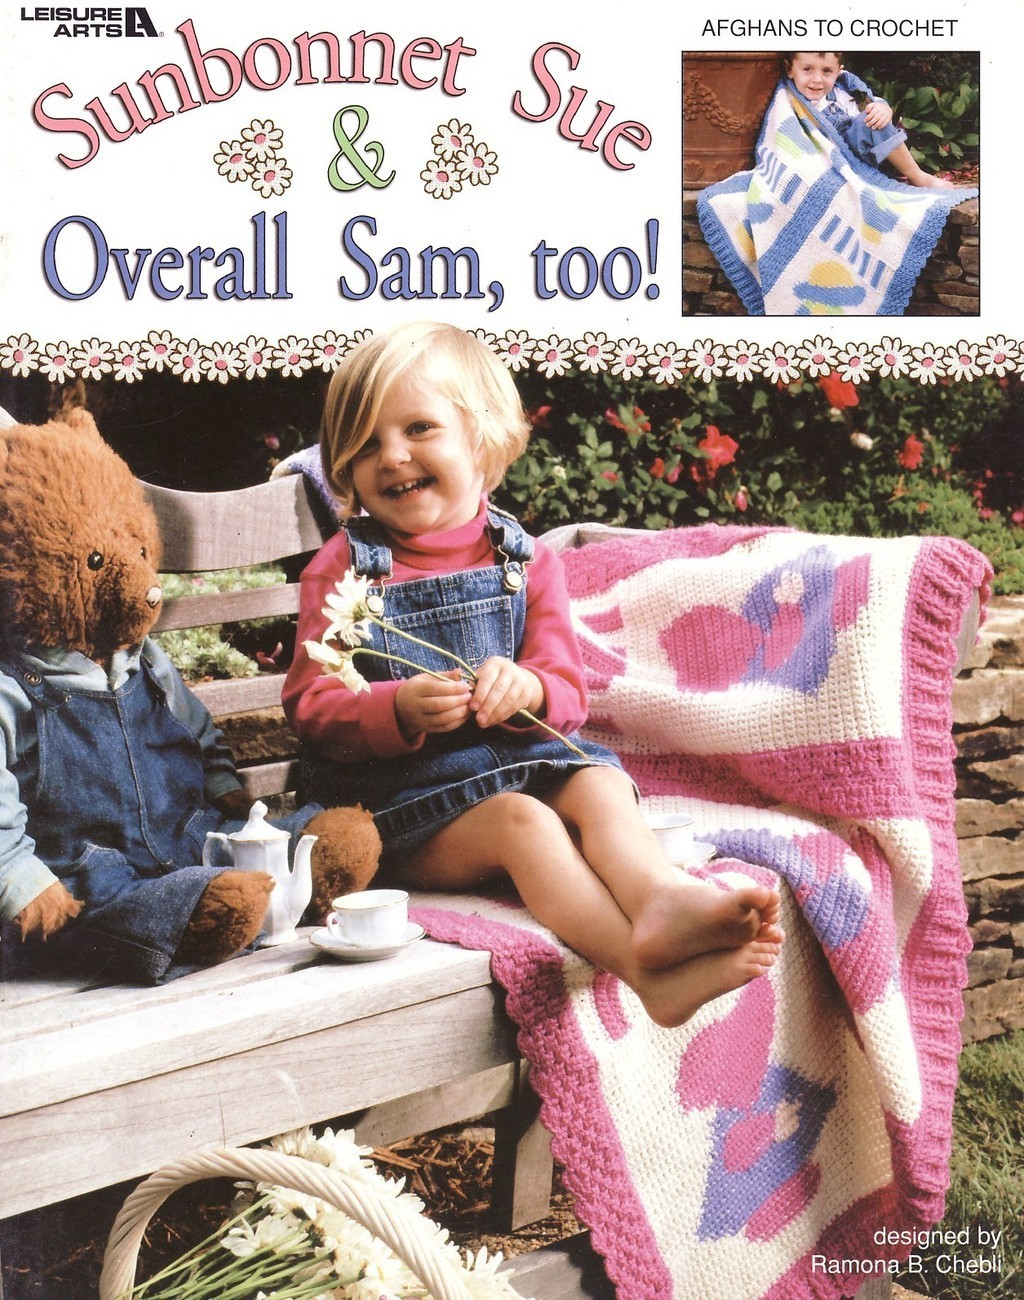 Sunbonnet Sue & Overall Sam Too Afghan Crochet Patterns Book Blankets Boy Girl